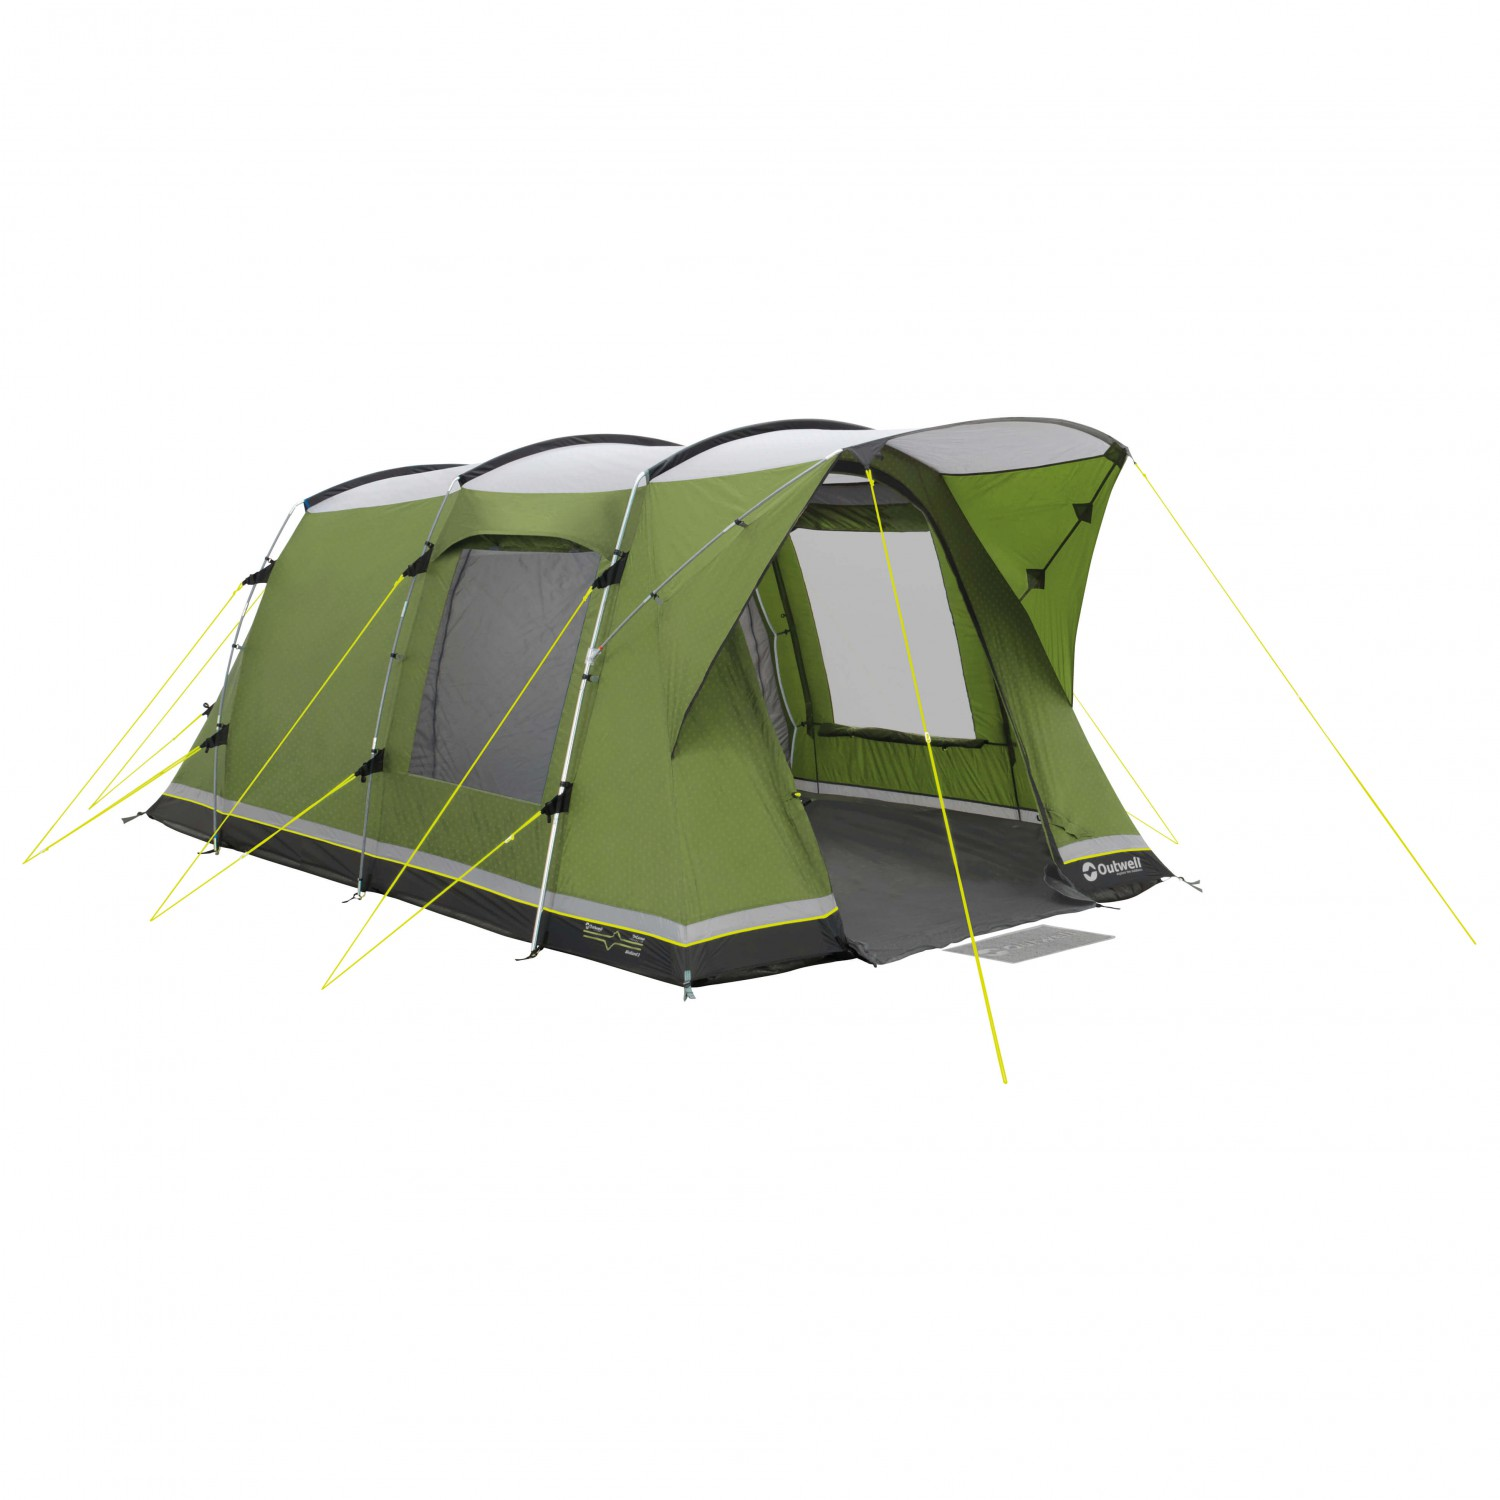 Outwell - Birdland 3 - 3 man tent ...  sc 1 st  Alpinetrek & Outwell Birdland 3 - 3 Man Tent | Free UK Delivery | Alpinetrek.co.uk